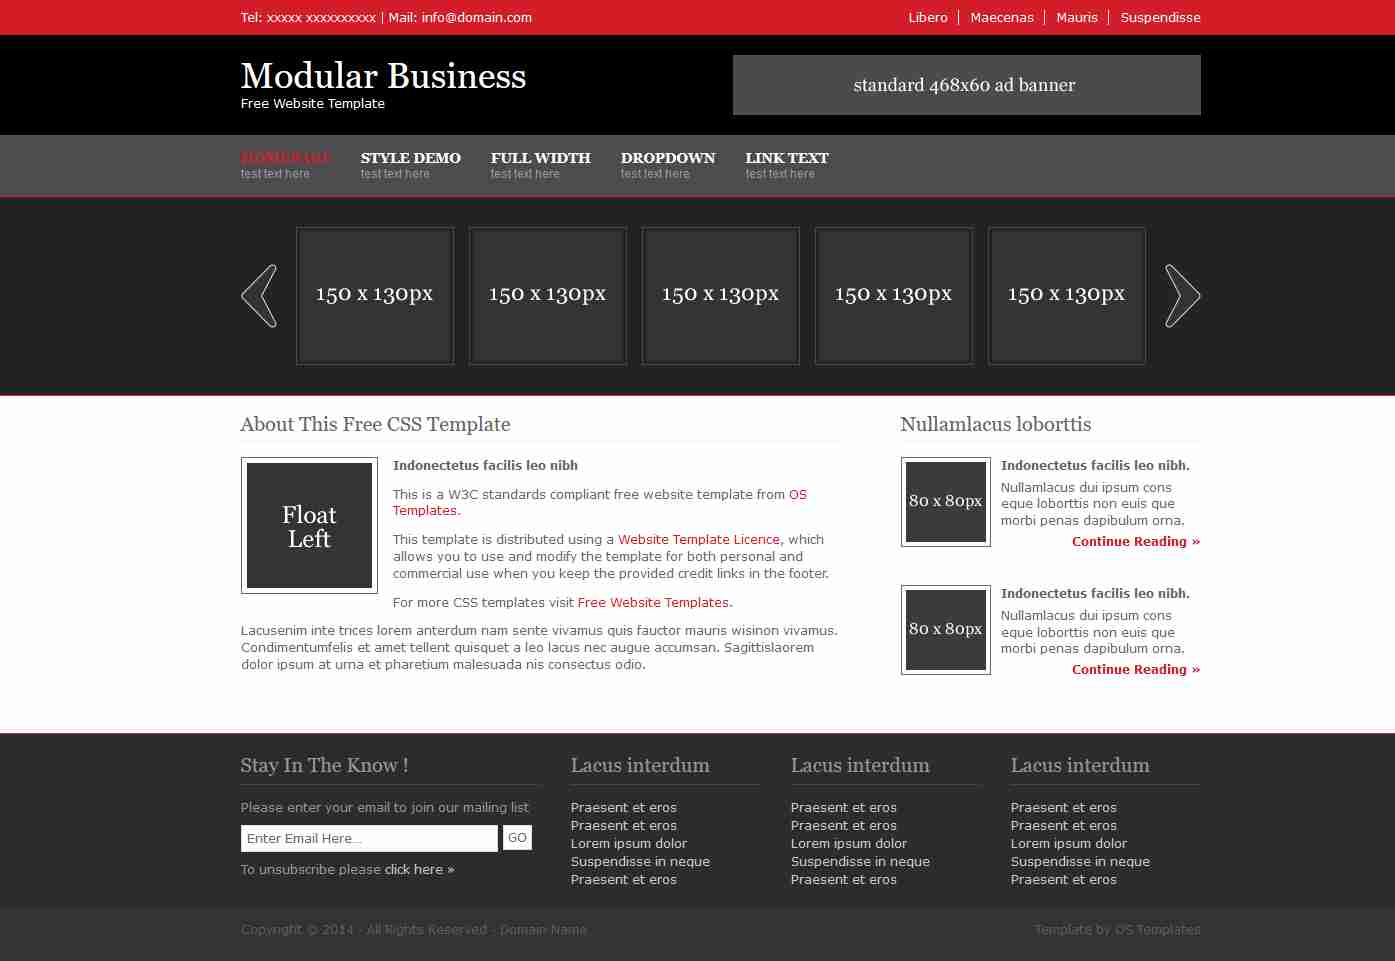 How to create a awesome business website using only HTML & CSS